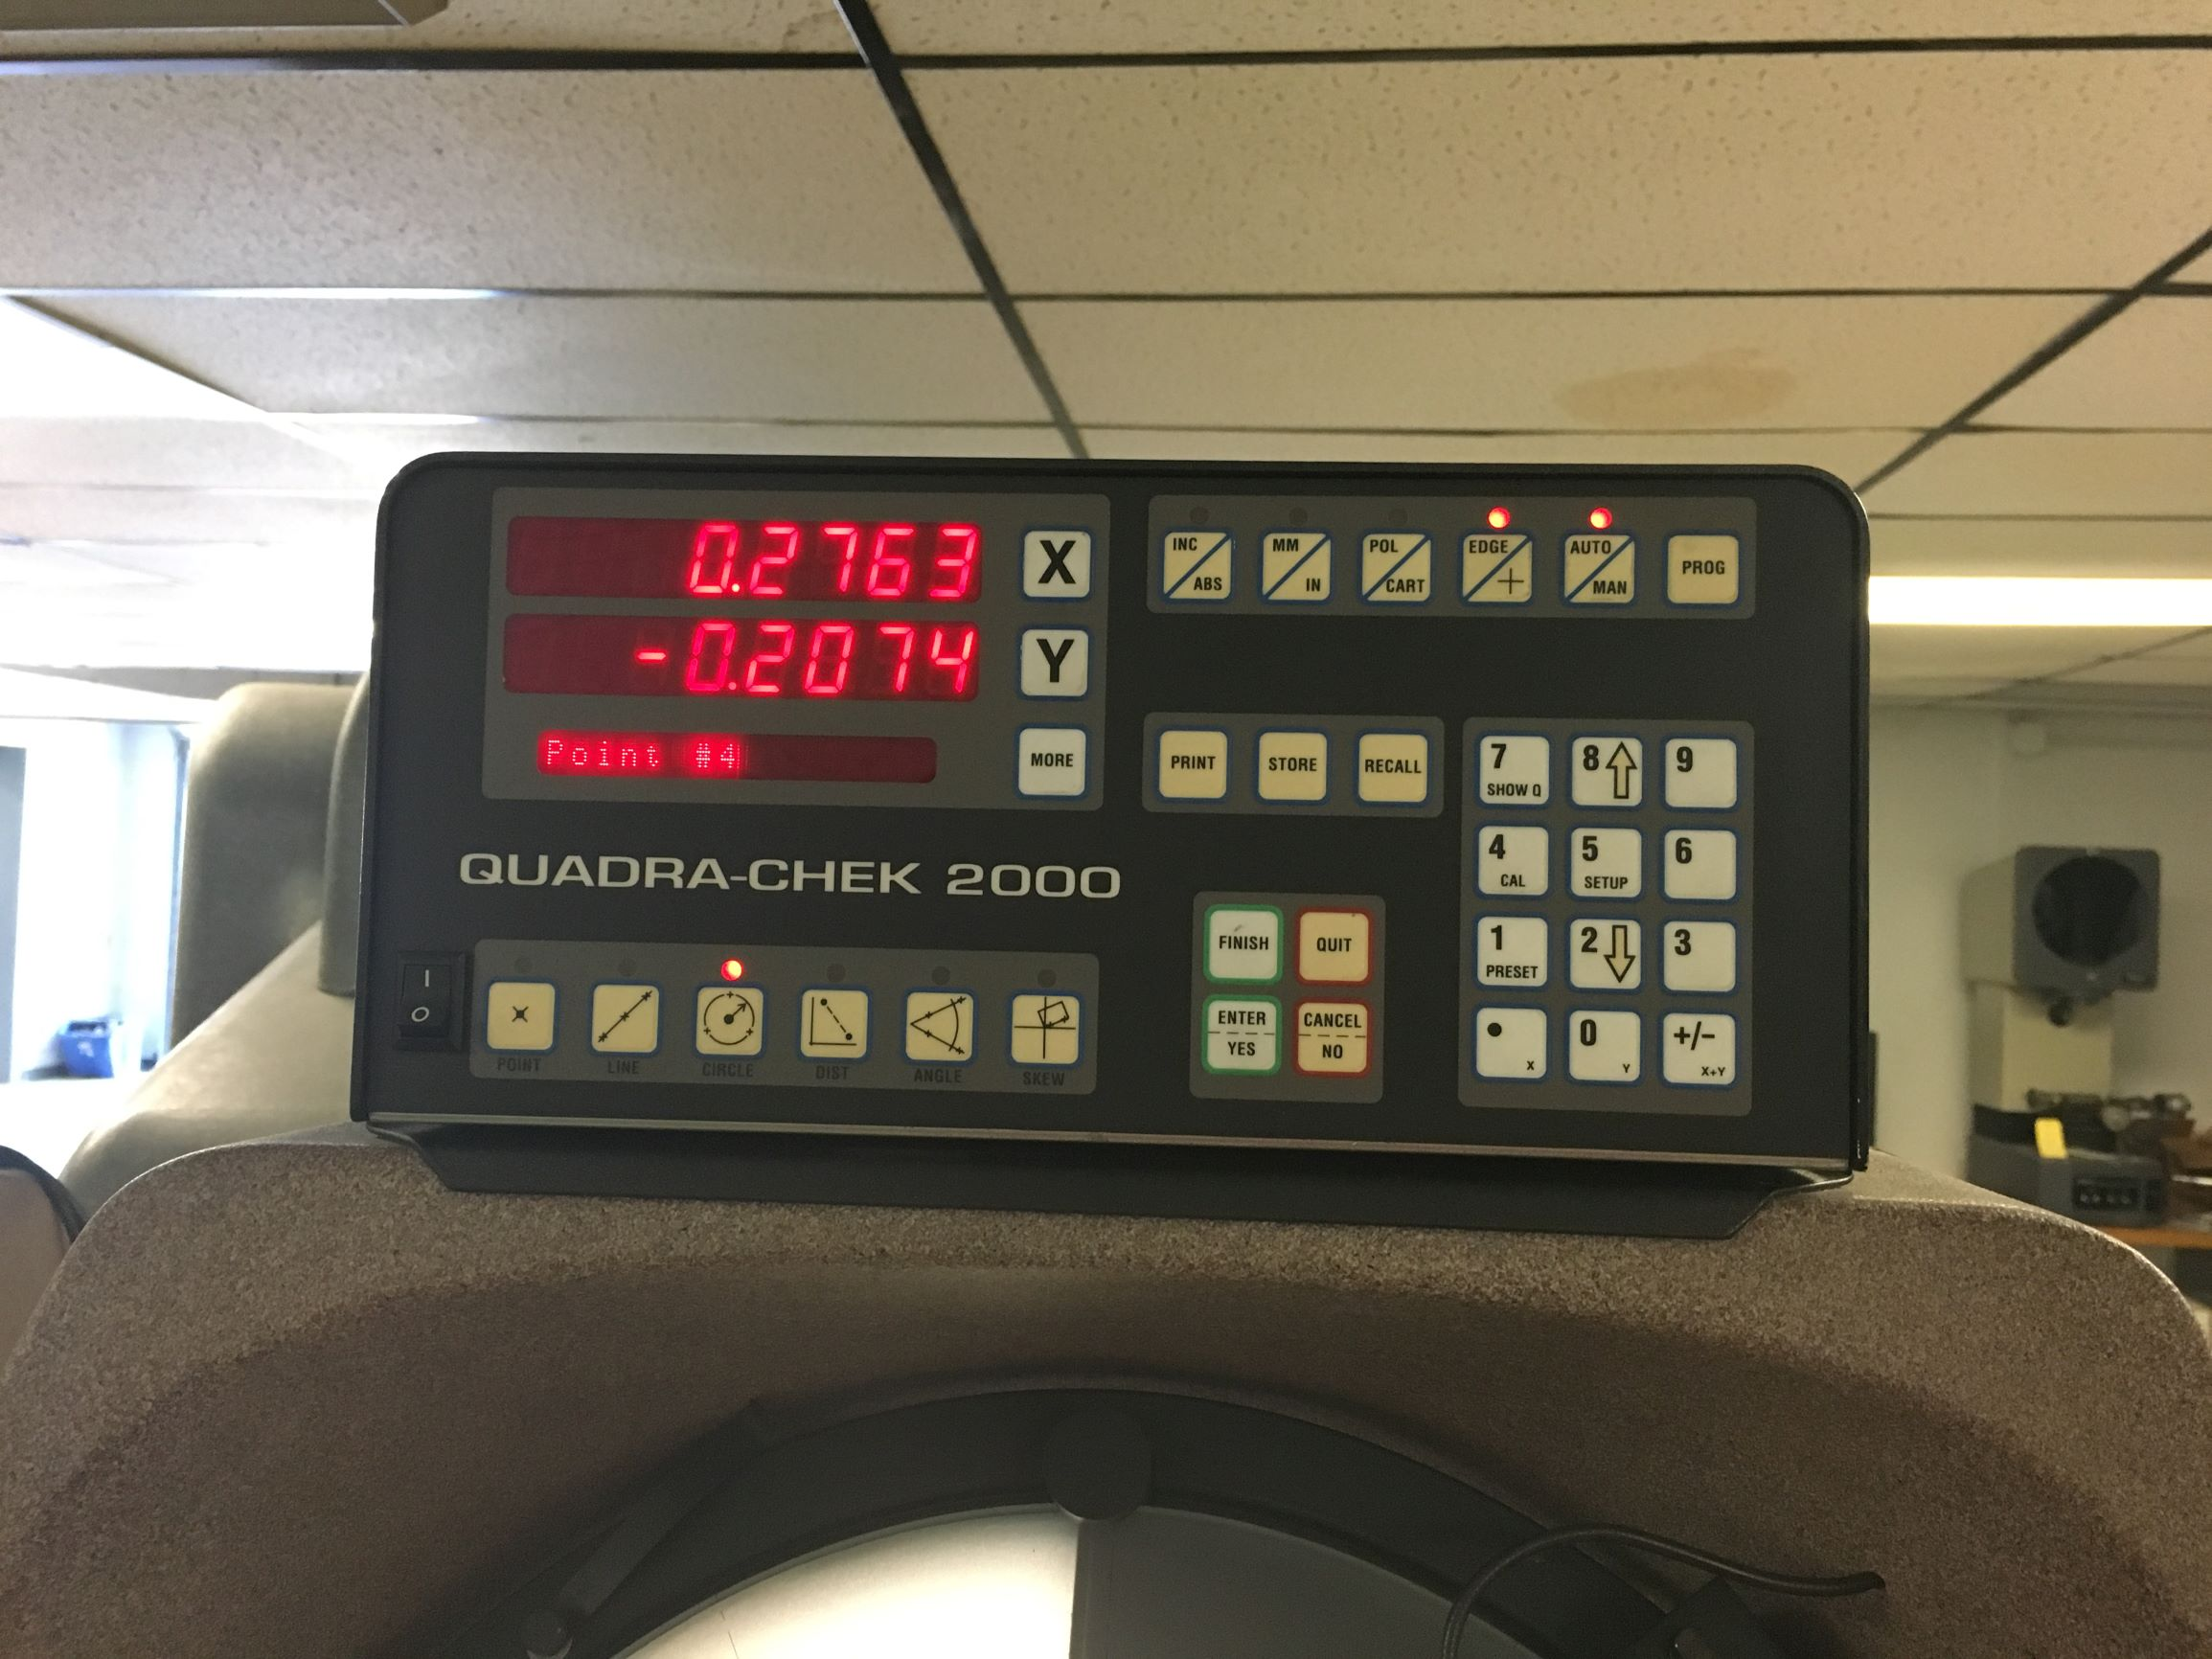 """14"""" Scherr-Tumico / S-T Industries Model 20-3500 Bench Top Optical Comparator, S/N R951315, New 1995."""